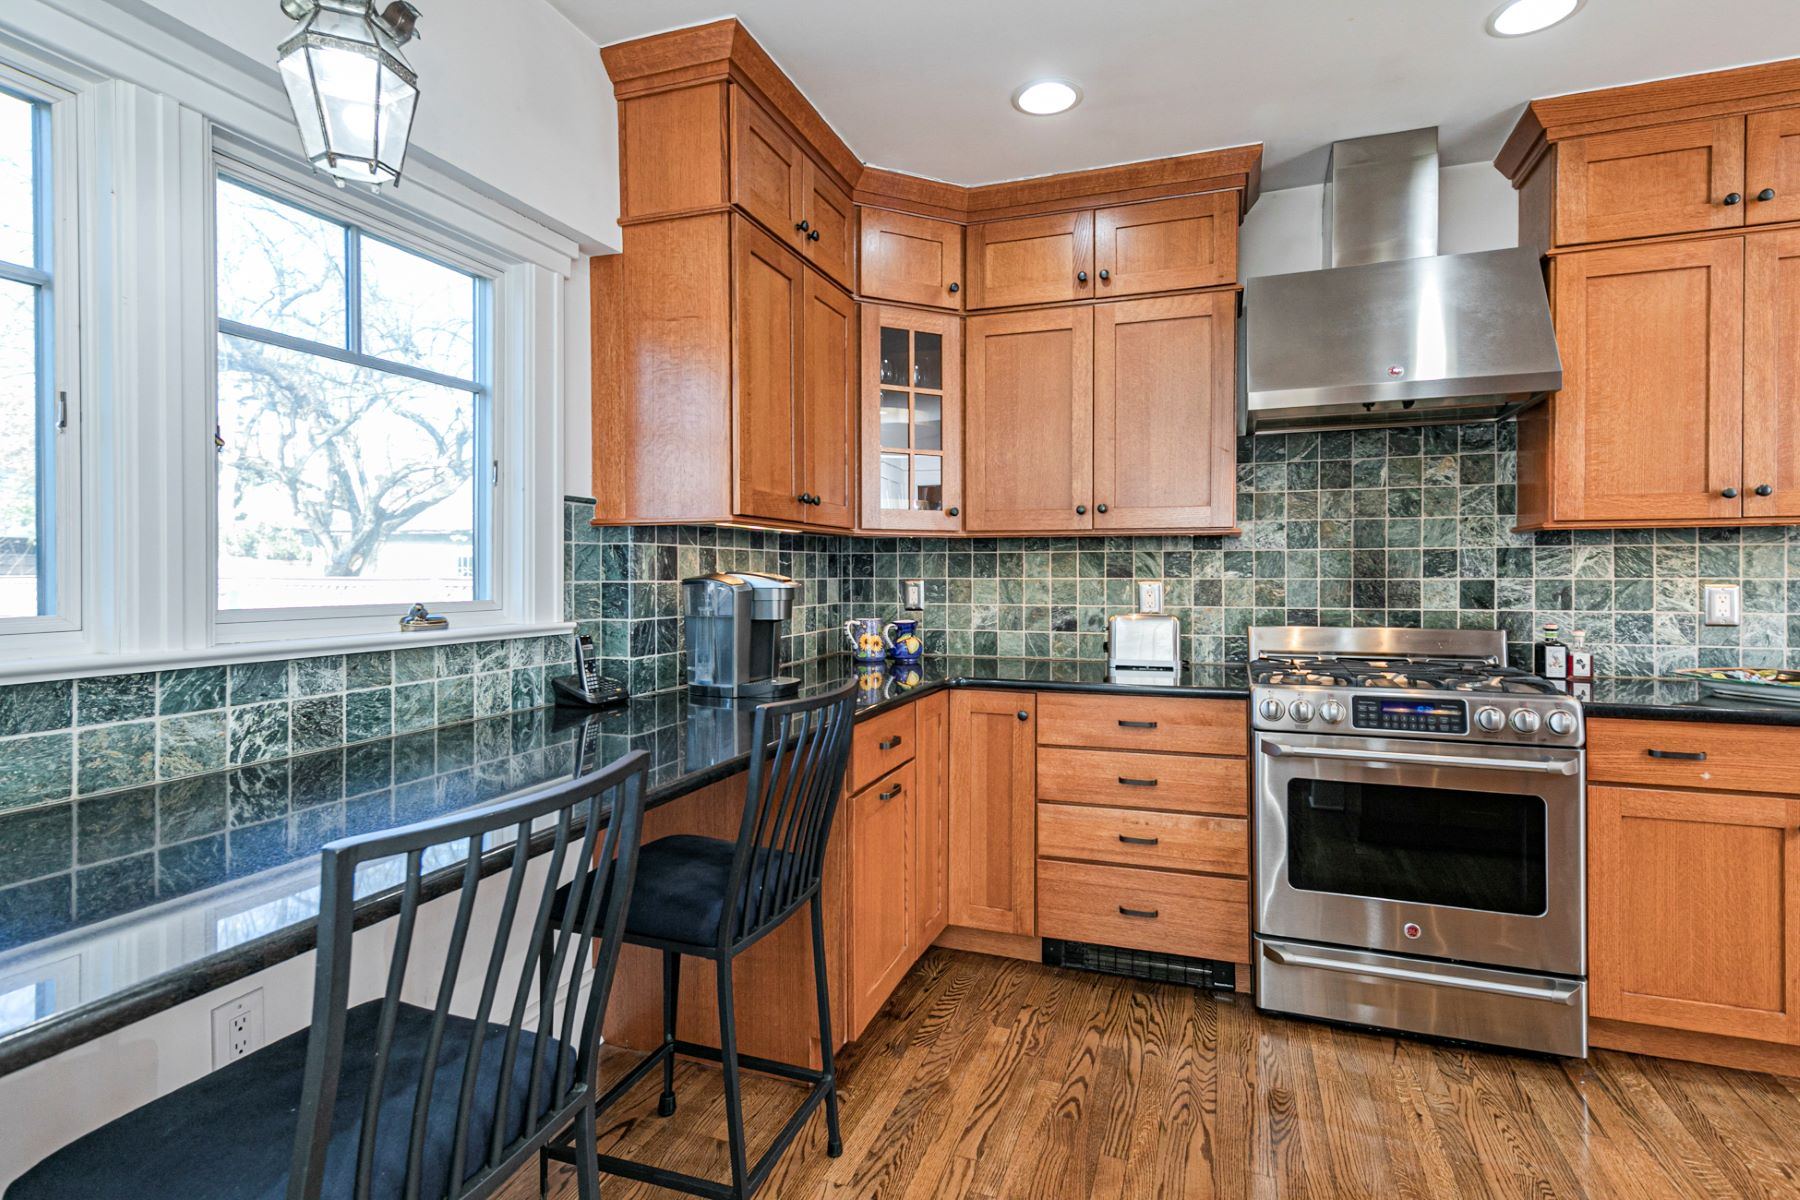 Additional photo for property listing at Glorious In-Town Living, Without Compromise 122 Moore Street, Princeton, New Jersey 08540 United States